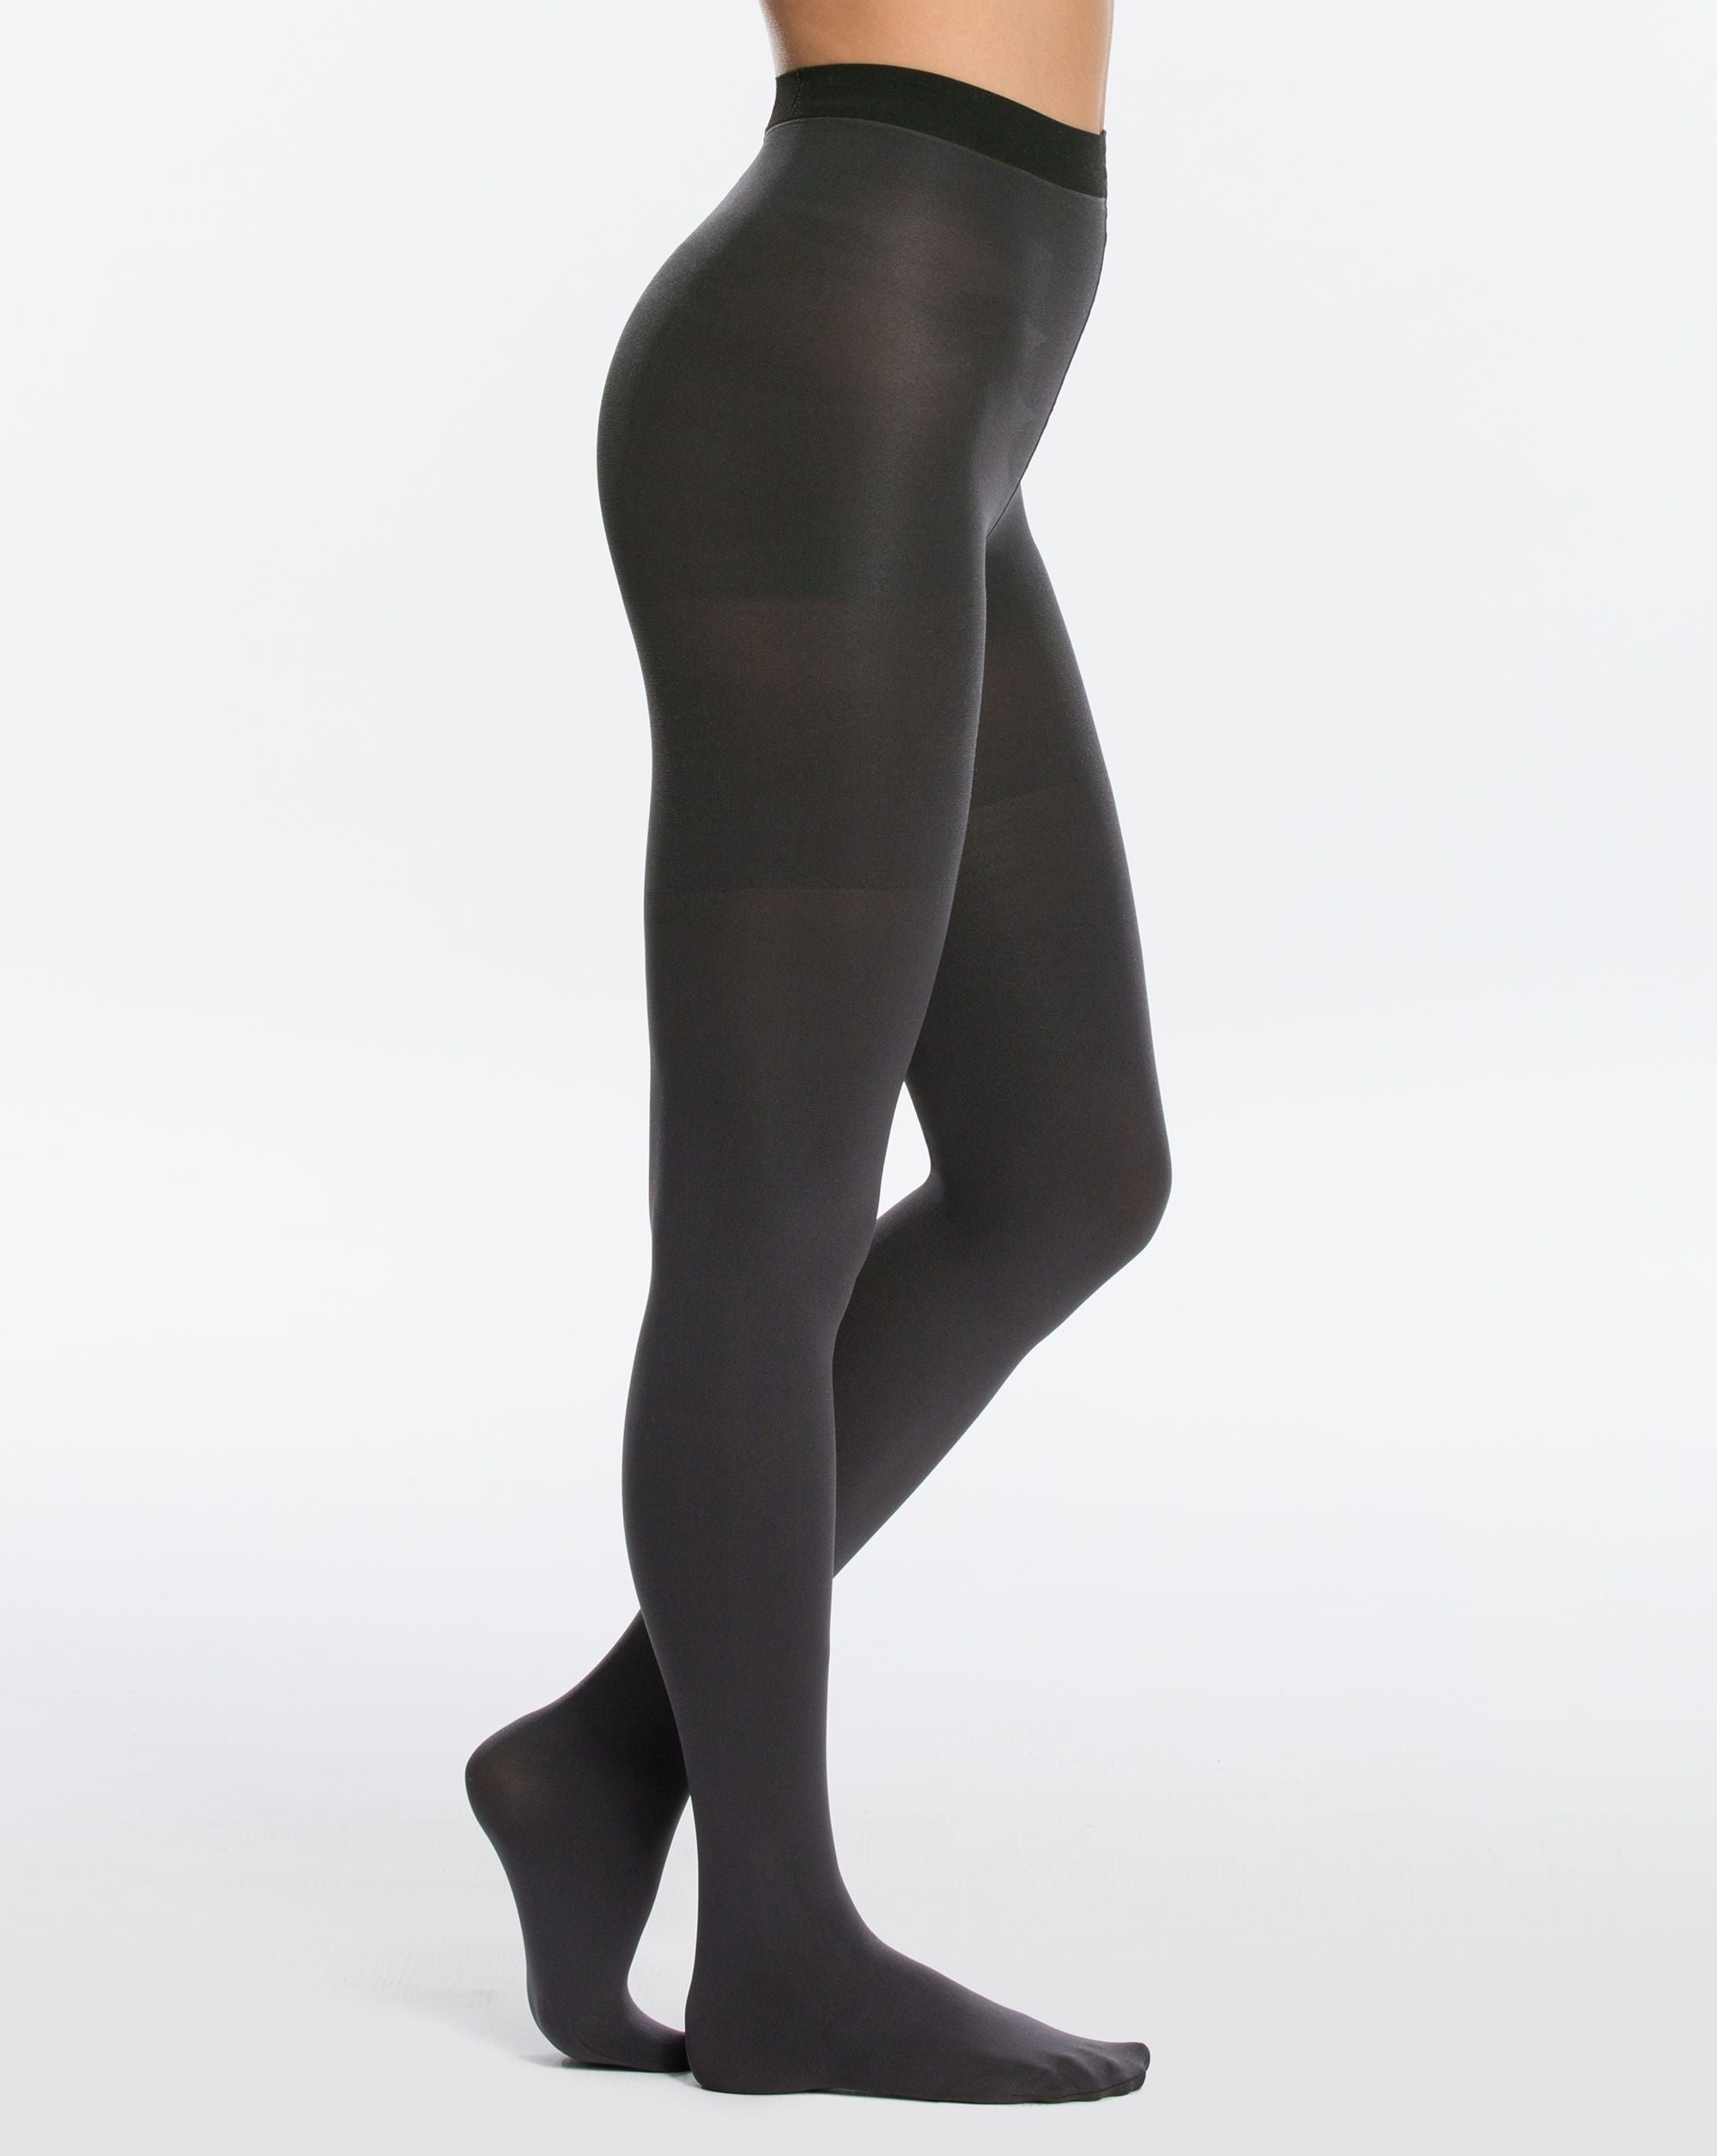 07c3837ba5c Reversible Mid-Thigh Shaping Tights in Black Charcoal